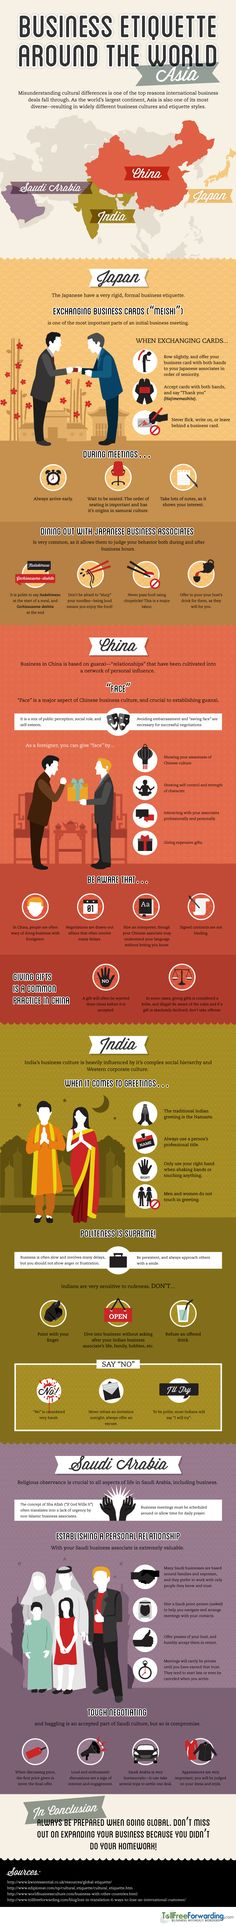 It's always good to know the business etiquette of other cultures for when you travel. Global Business Etiquette: Asia